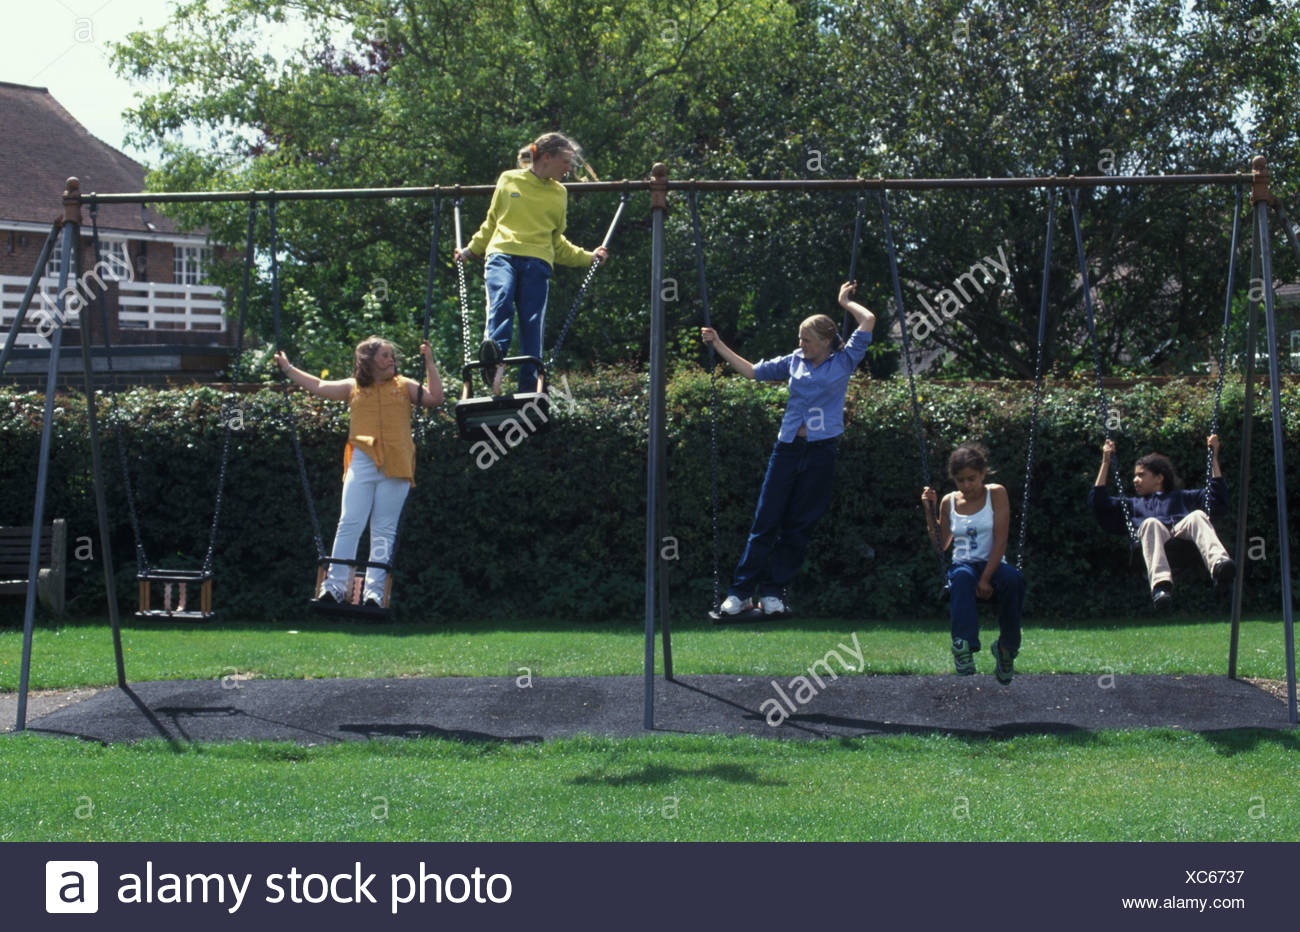 teenagers on swings in the local park - Stock Image